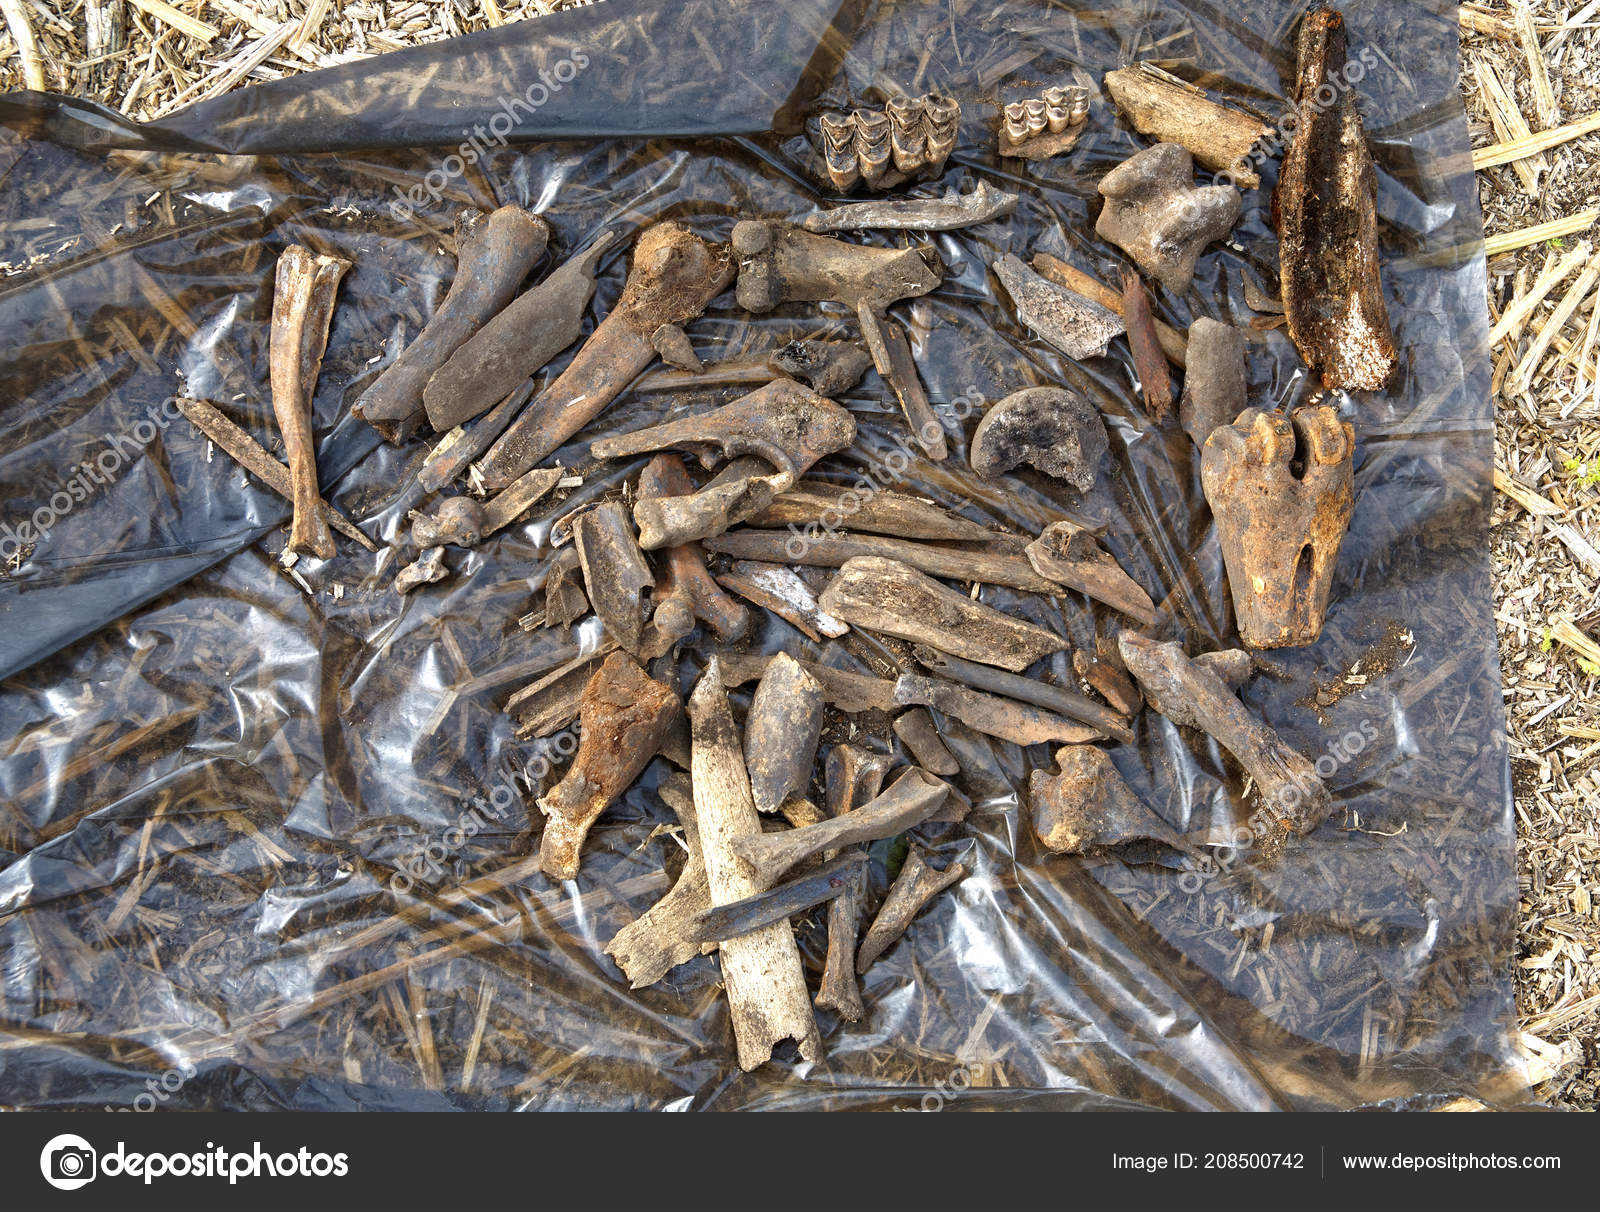 Interesting archaeological finds in Siberia